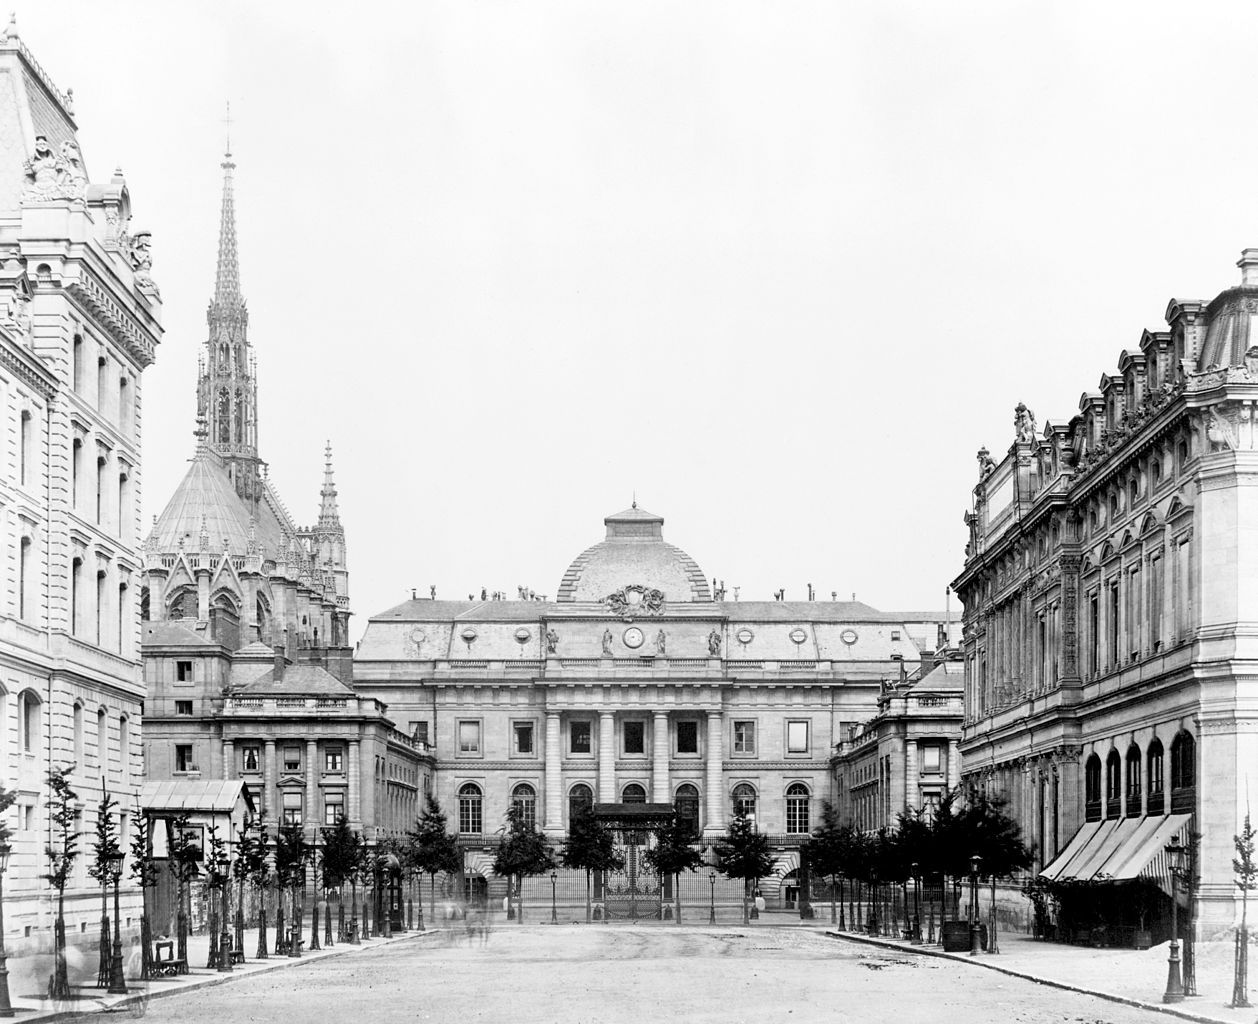 The Palais de Justice and the Sainte Chapelle, Paris